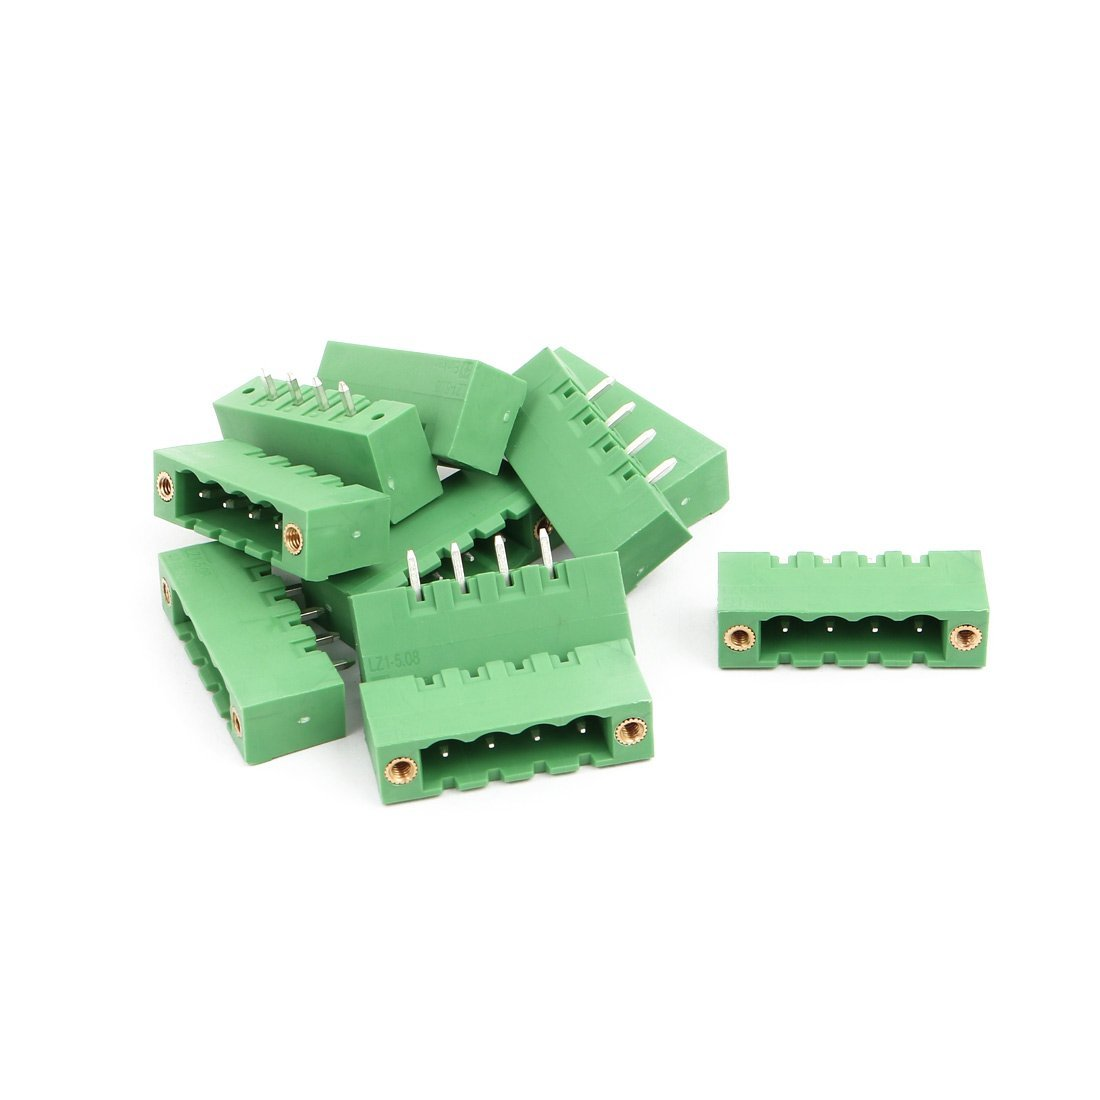 uxcell 10Pcs AC 300V 15A 5.08mm Pitch 4P Terminal Block Wire Connection for PCB Mounting